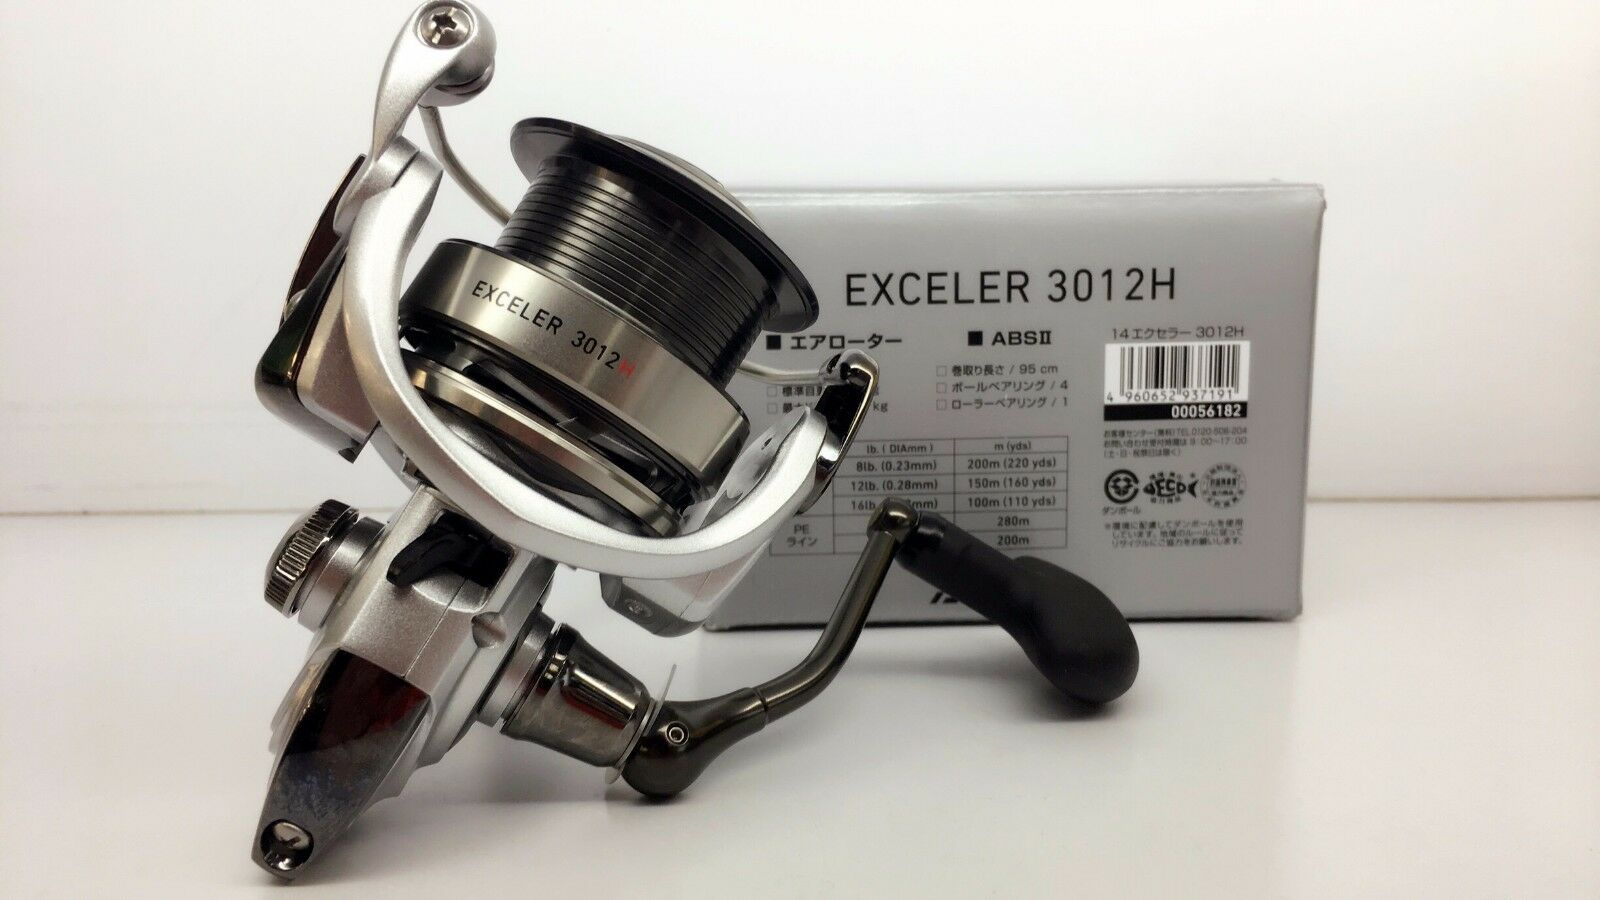 DAIWA Exceler 3012H Spinning Reel 3012 H Fedex Priority shipping 2days to Usa